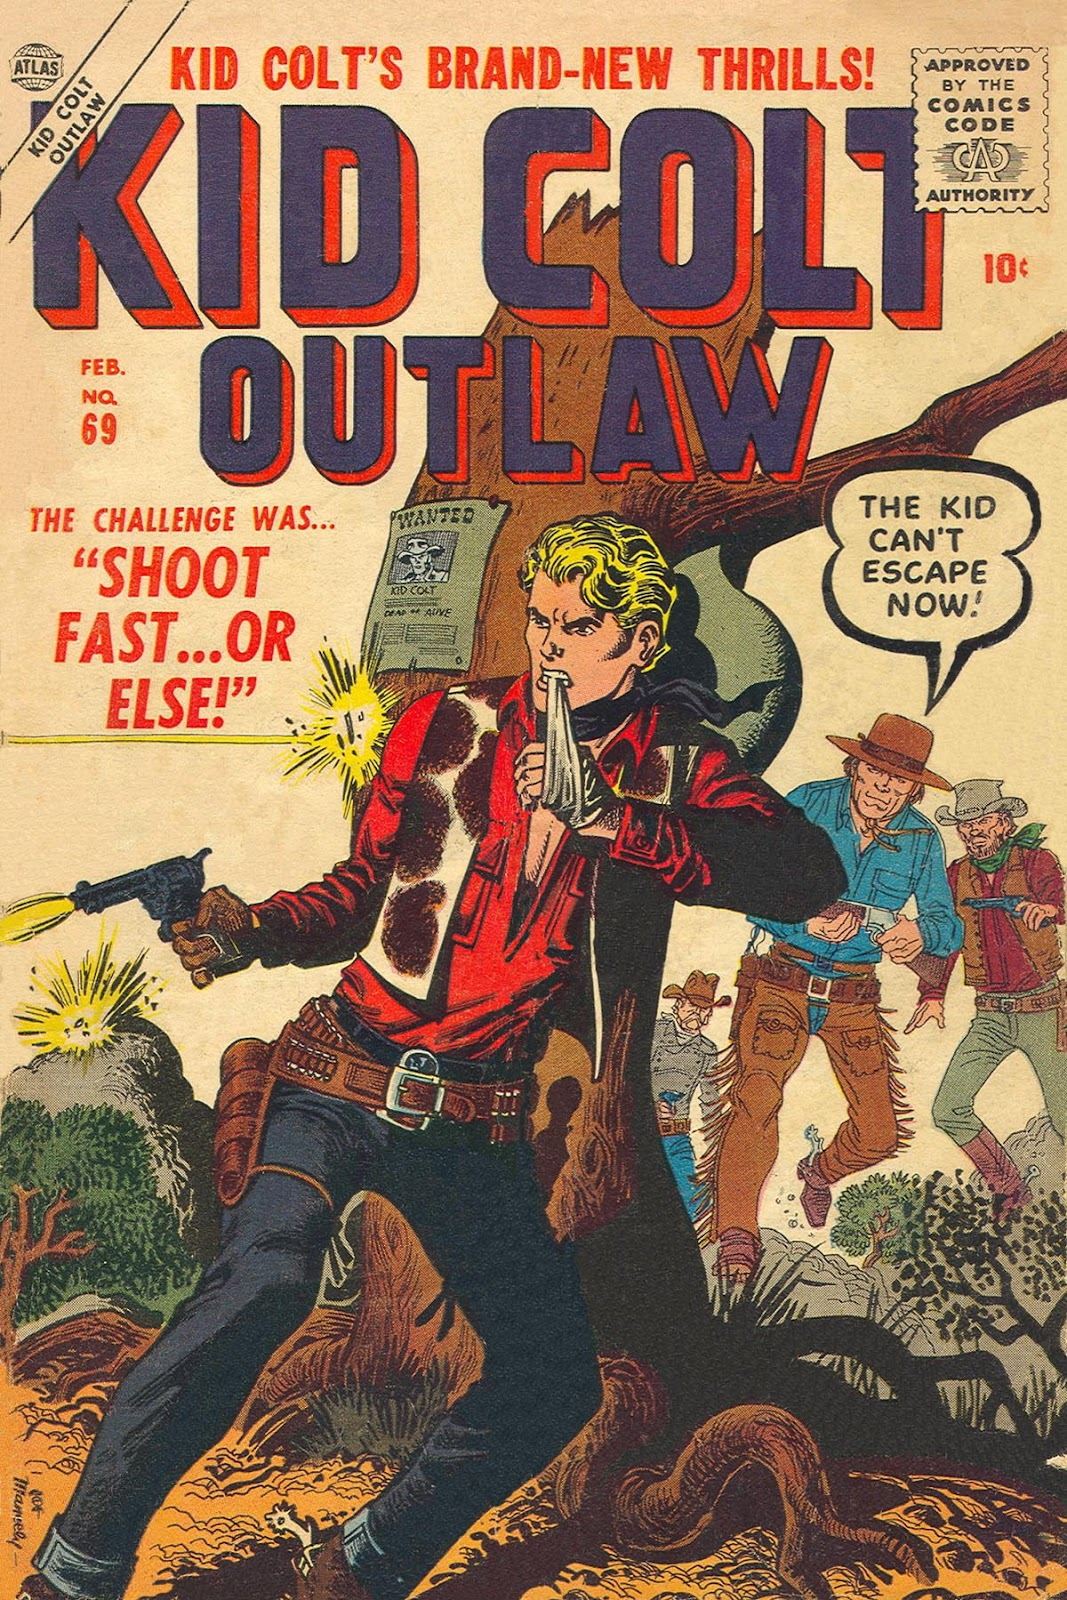 Kid Colt Outlaw issue 69 - Page 1